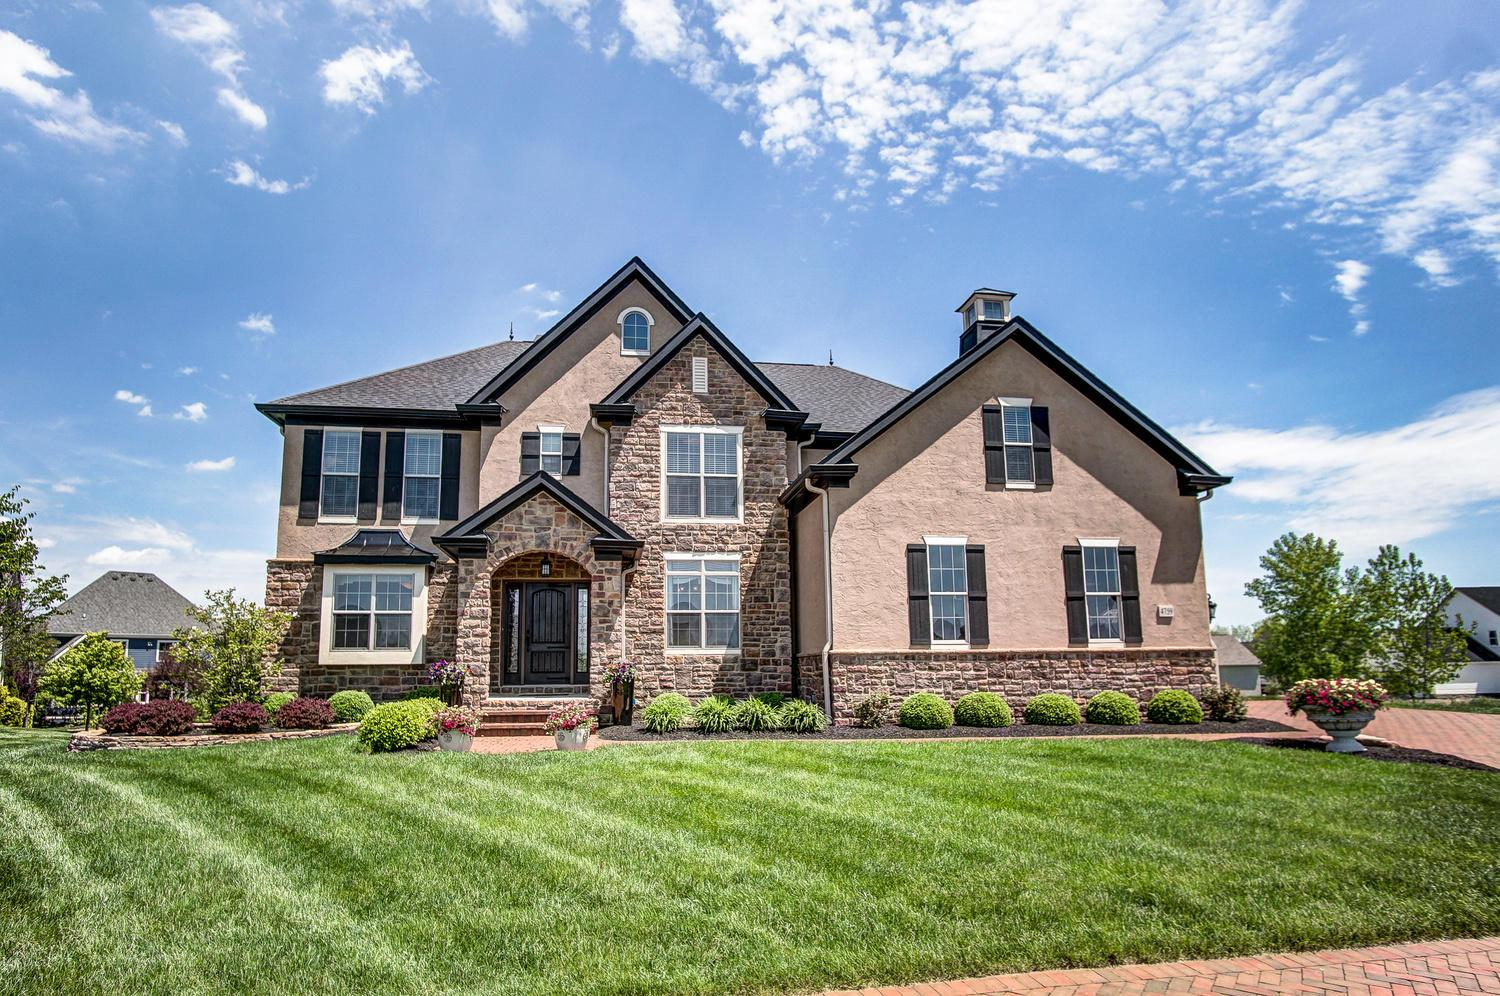 Photo of 4759 Nicholas Point Drive, Grove City, OH 43123